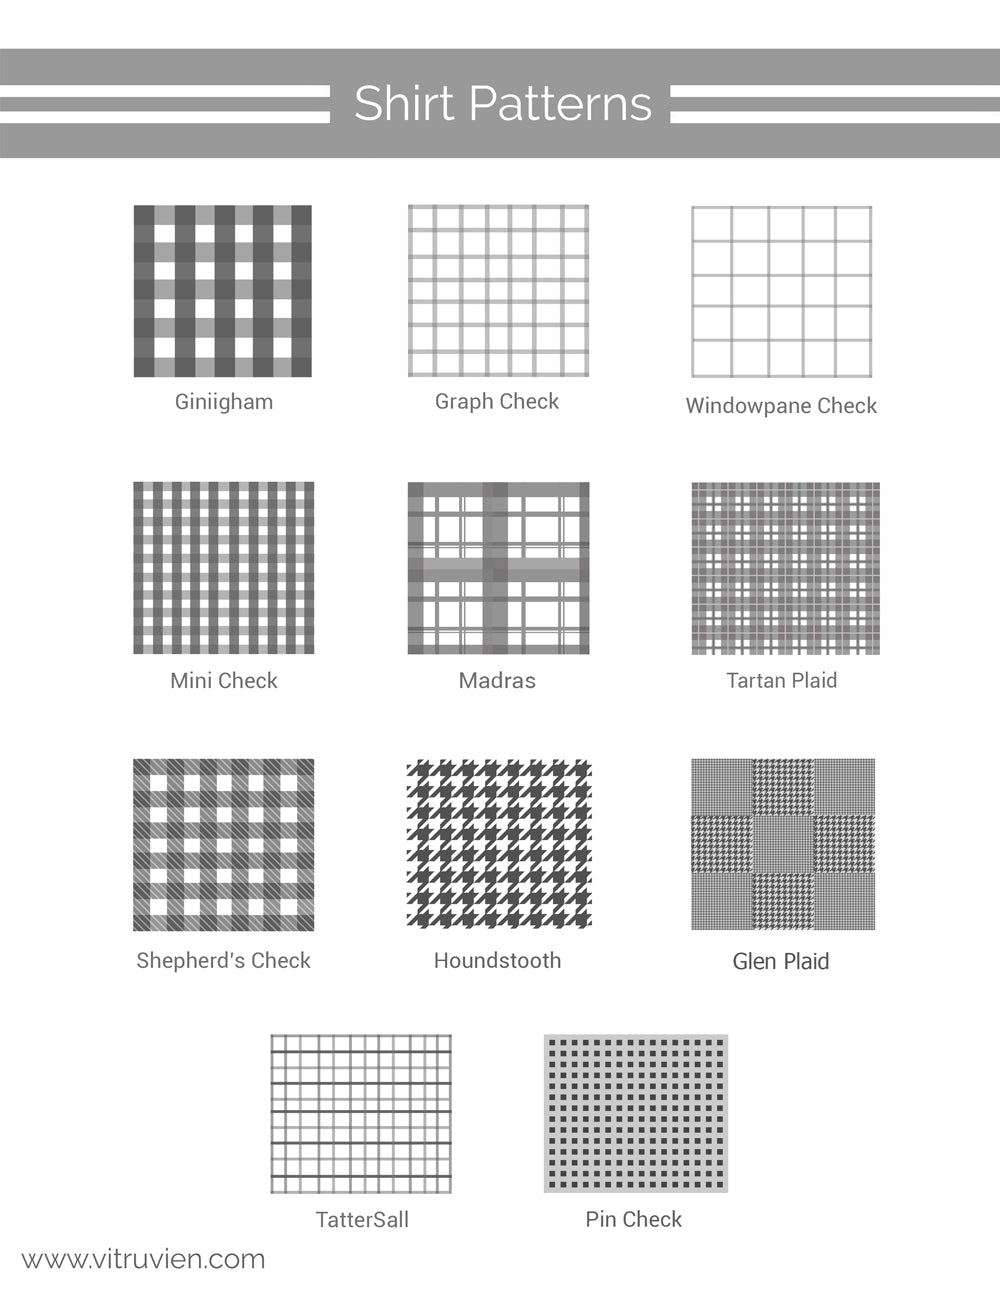 Check shirt pattern guide  #check #shirt #mens #fashion #street #style